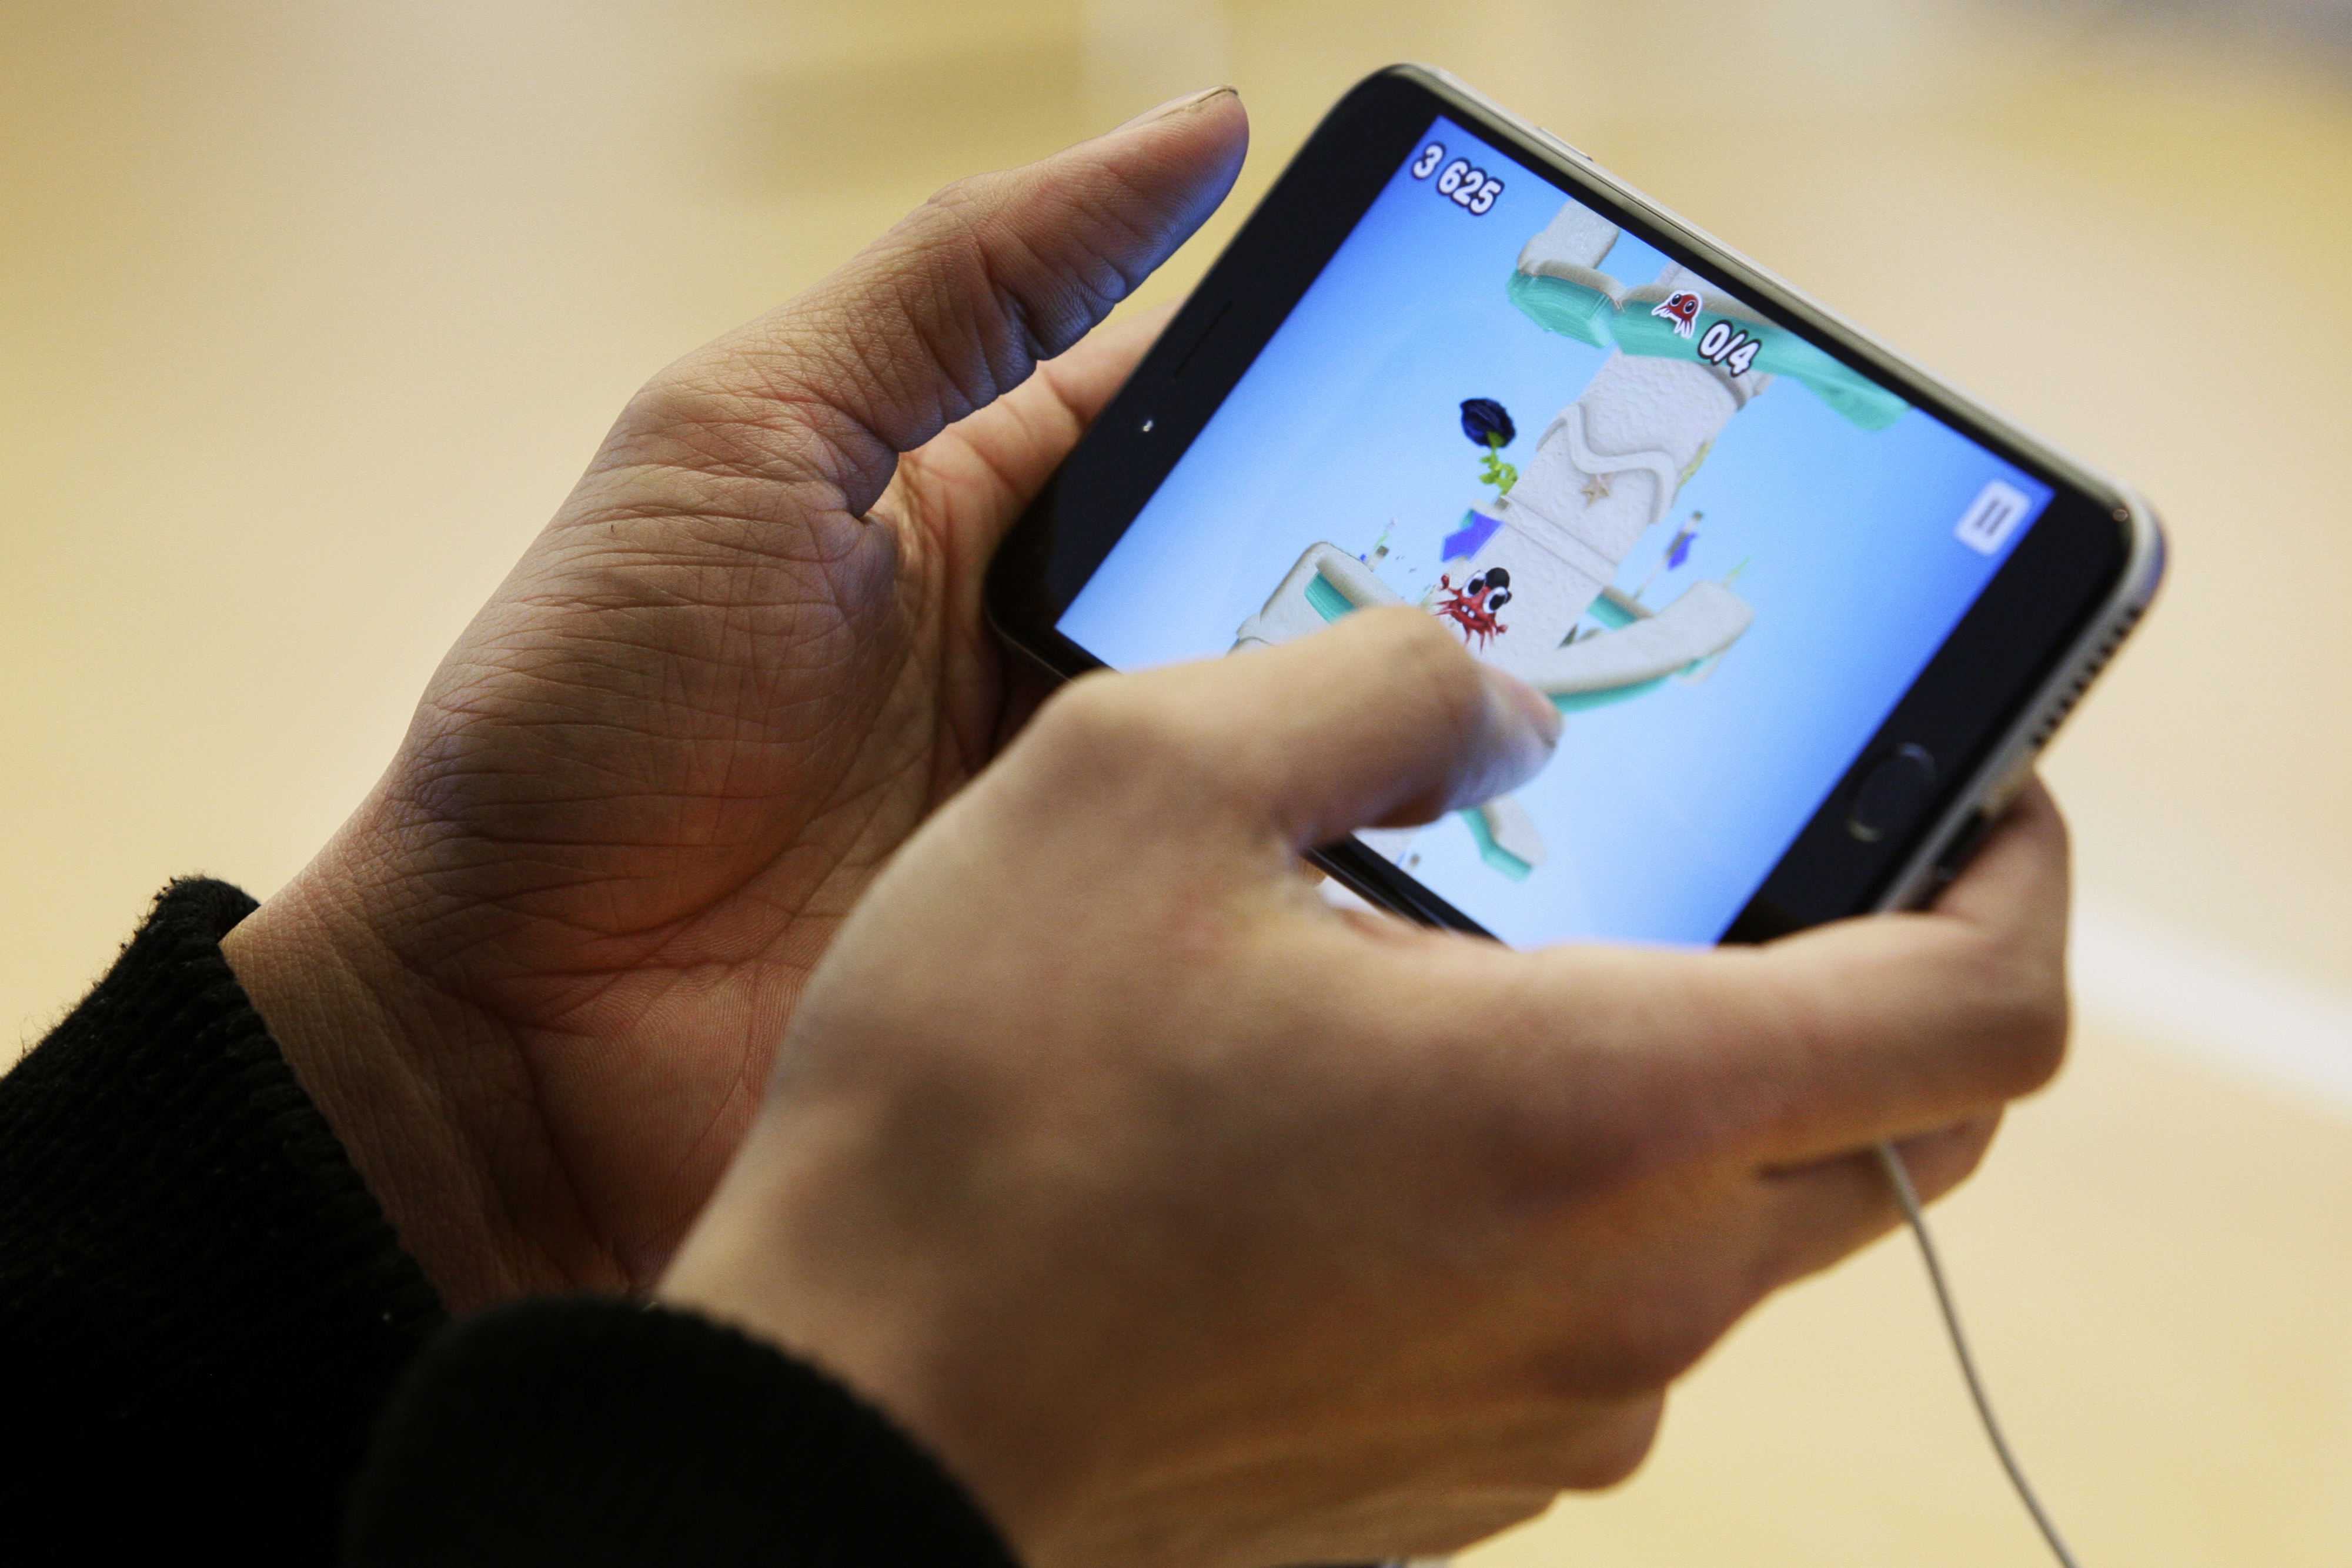 A customer plays a game on an iPhone 6 at the Apple Inc. George Street store during the sales launch of the iPhone 6 and iPhone 6 Plus in Sydney, Australia, on Friday, Sept. 19, 2014.